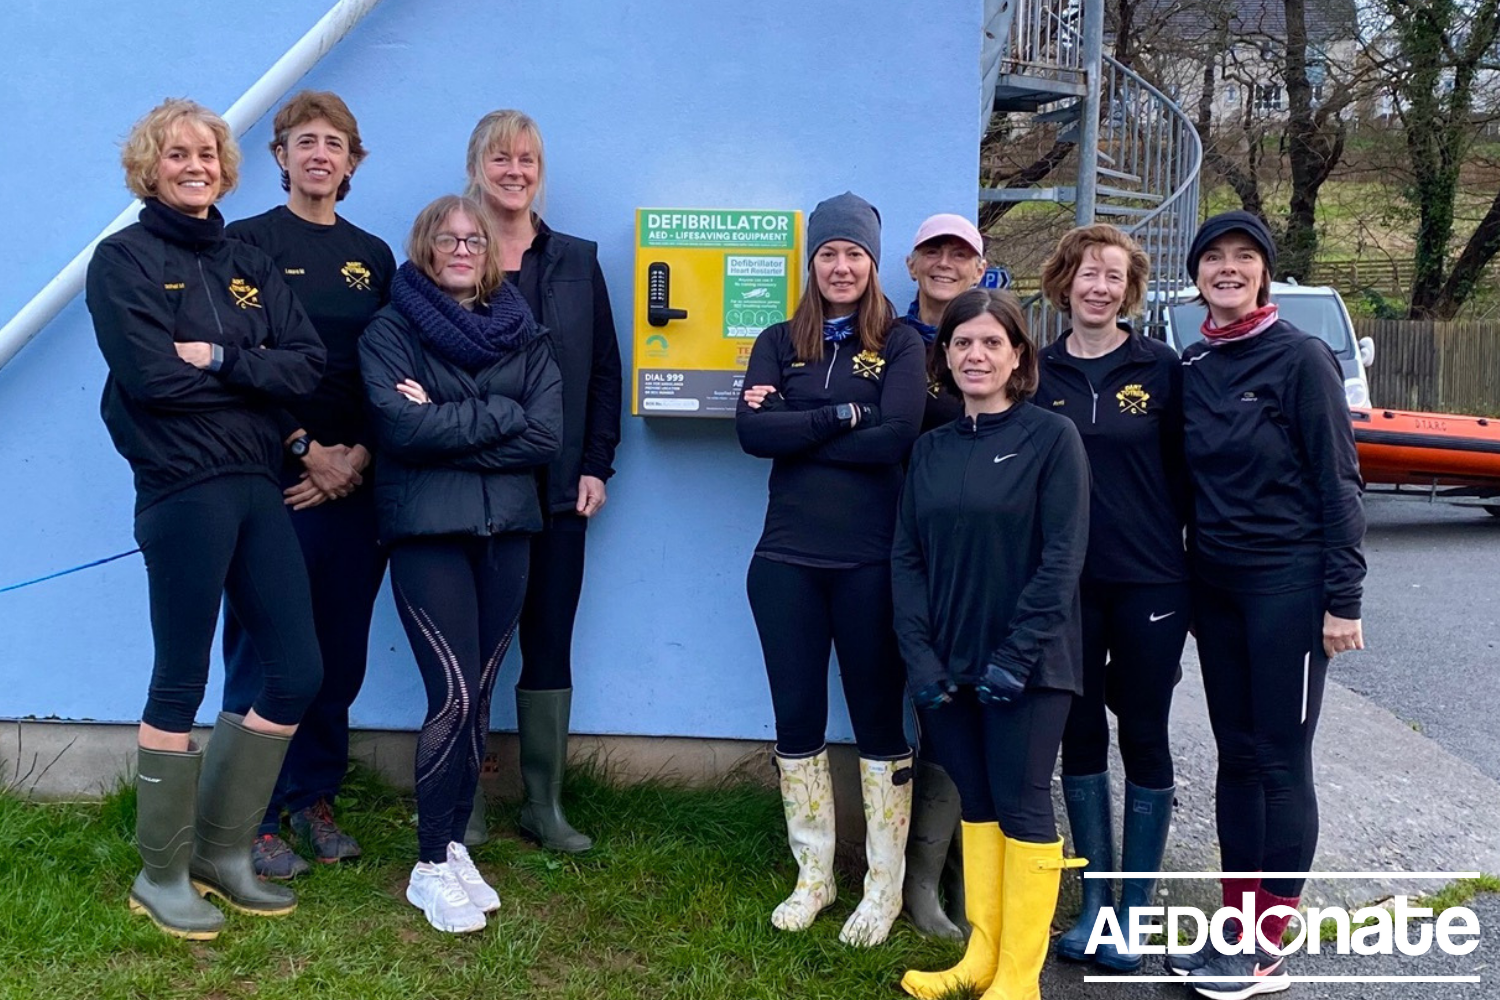 Defibrillator for Dart-Totnes Rowing Club